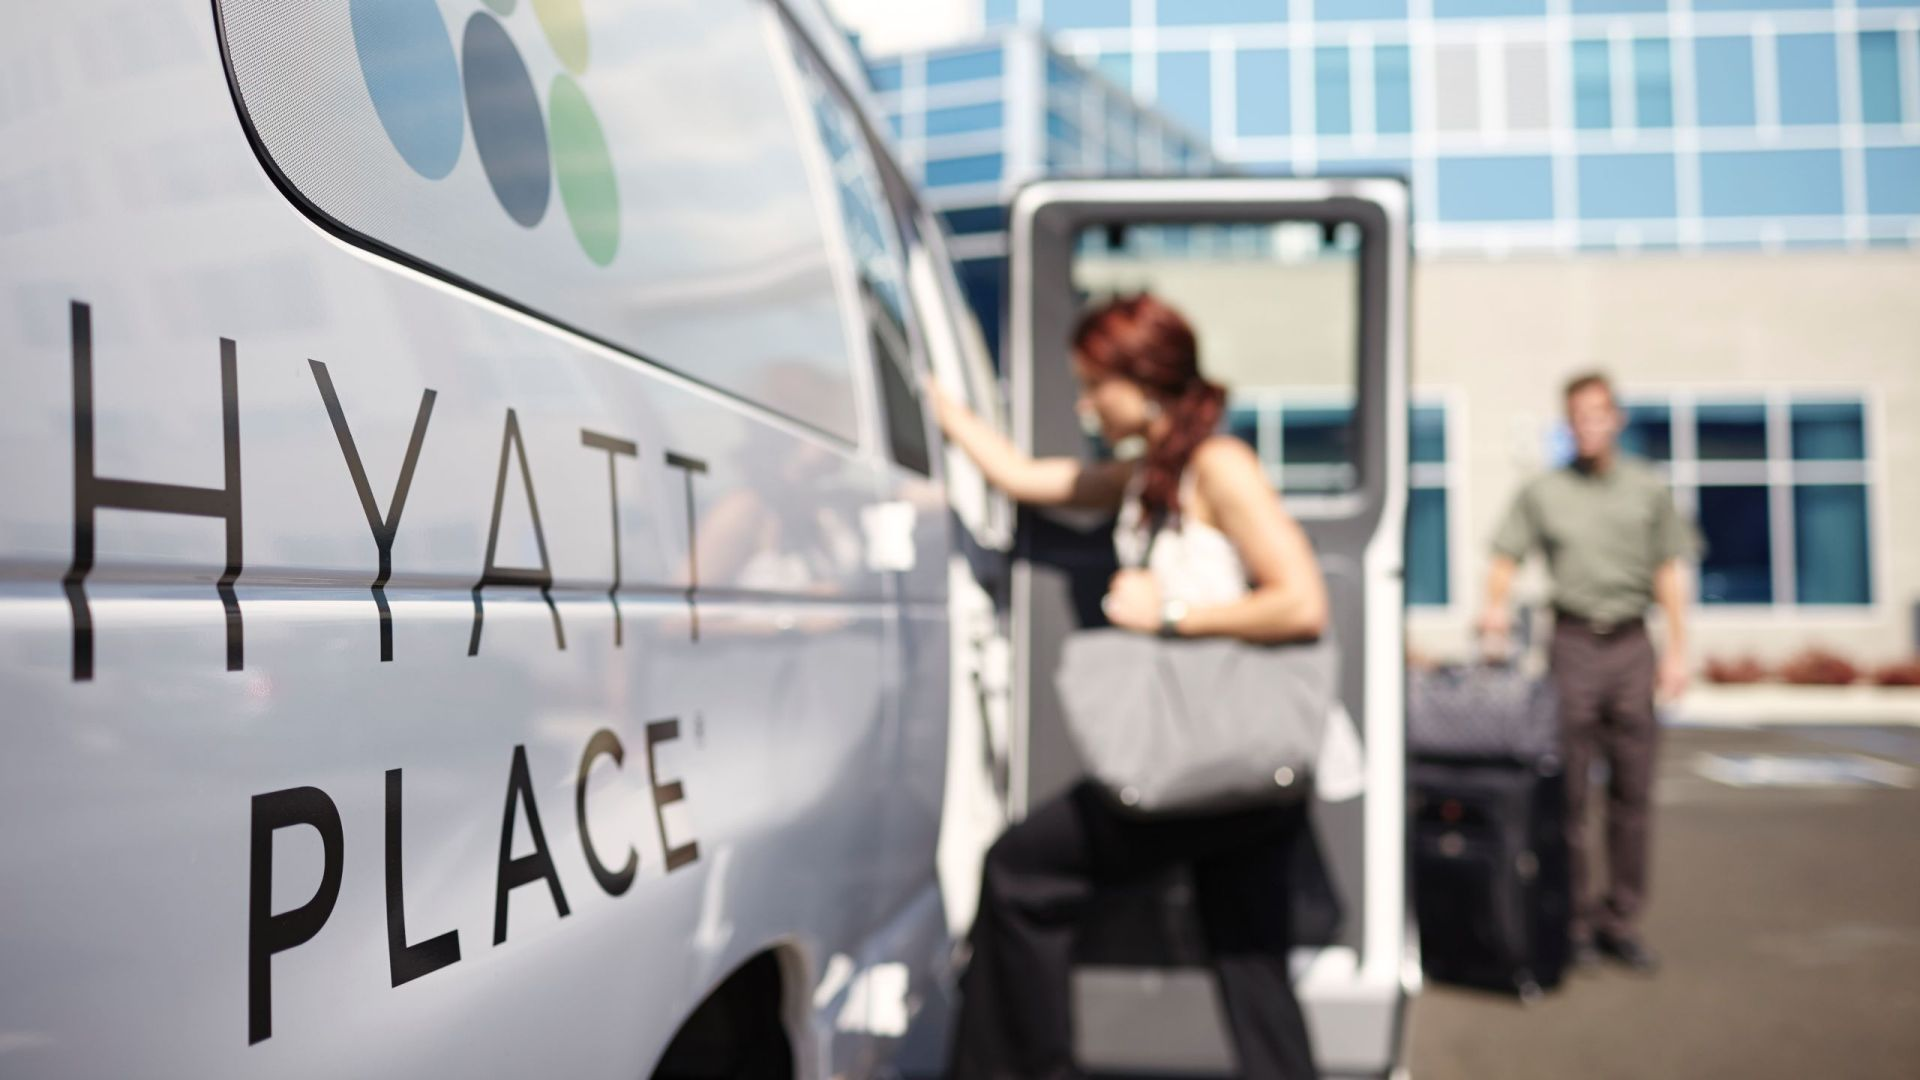 Hyatt Place Shuttle Van